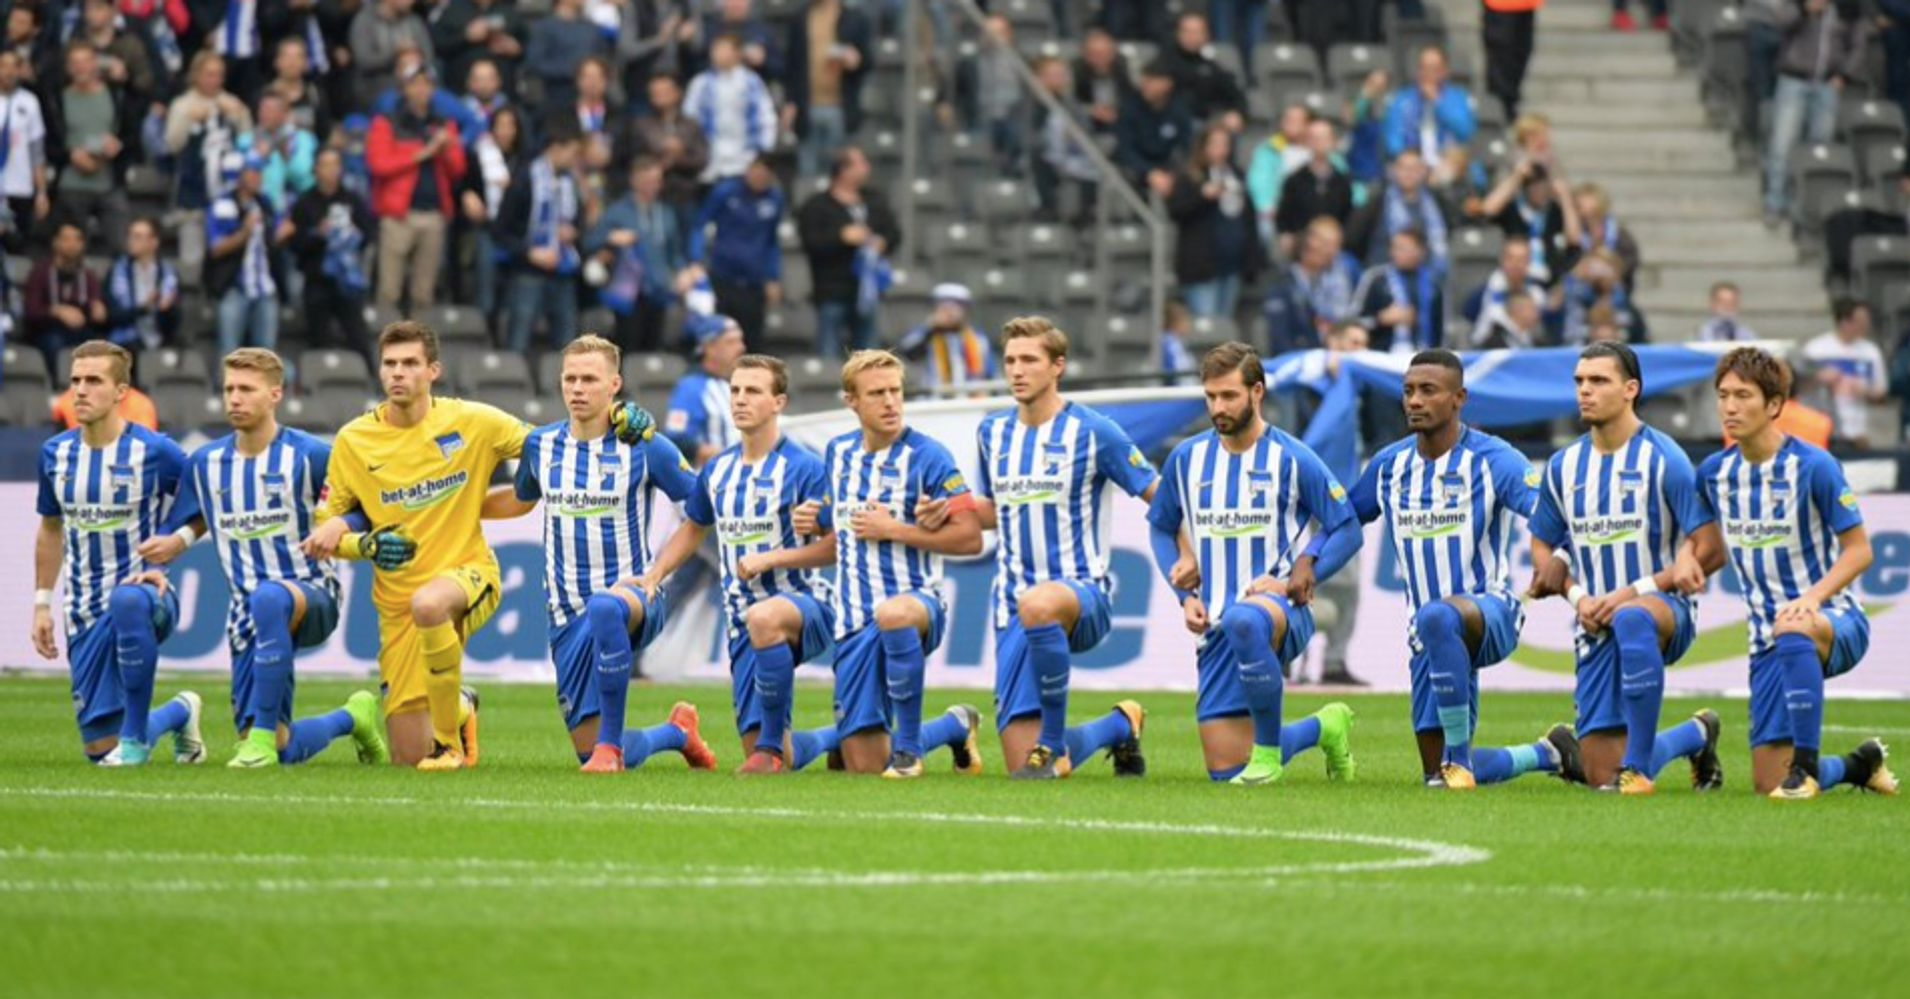 German Soccer Team Kneels During Game In Solidarity With NFL Players